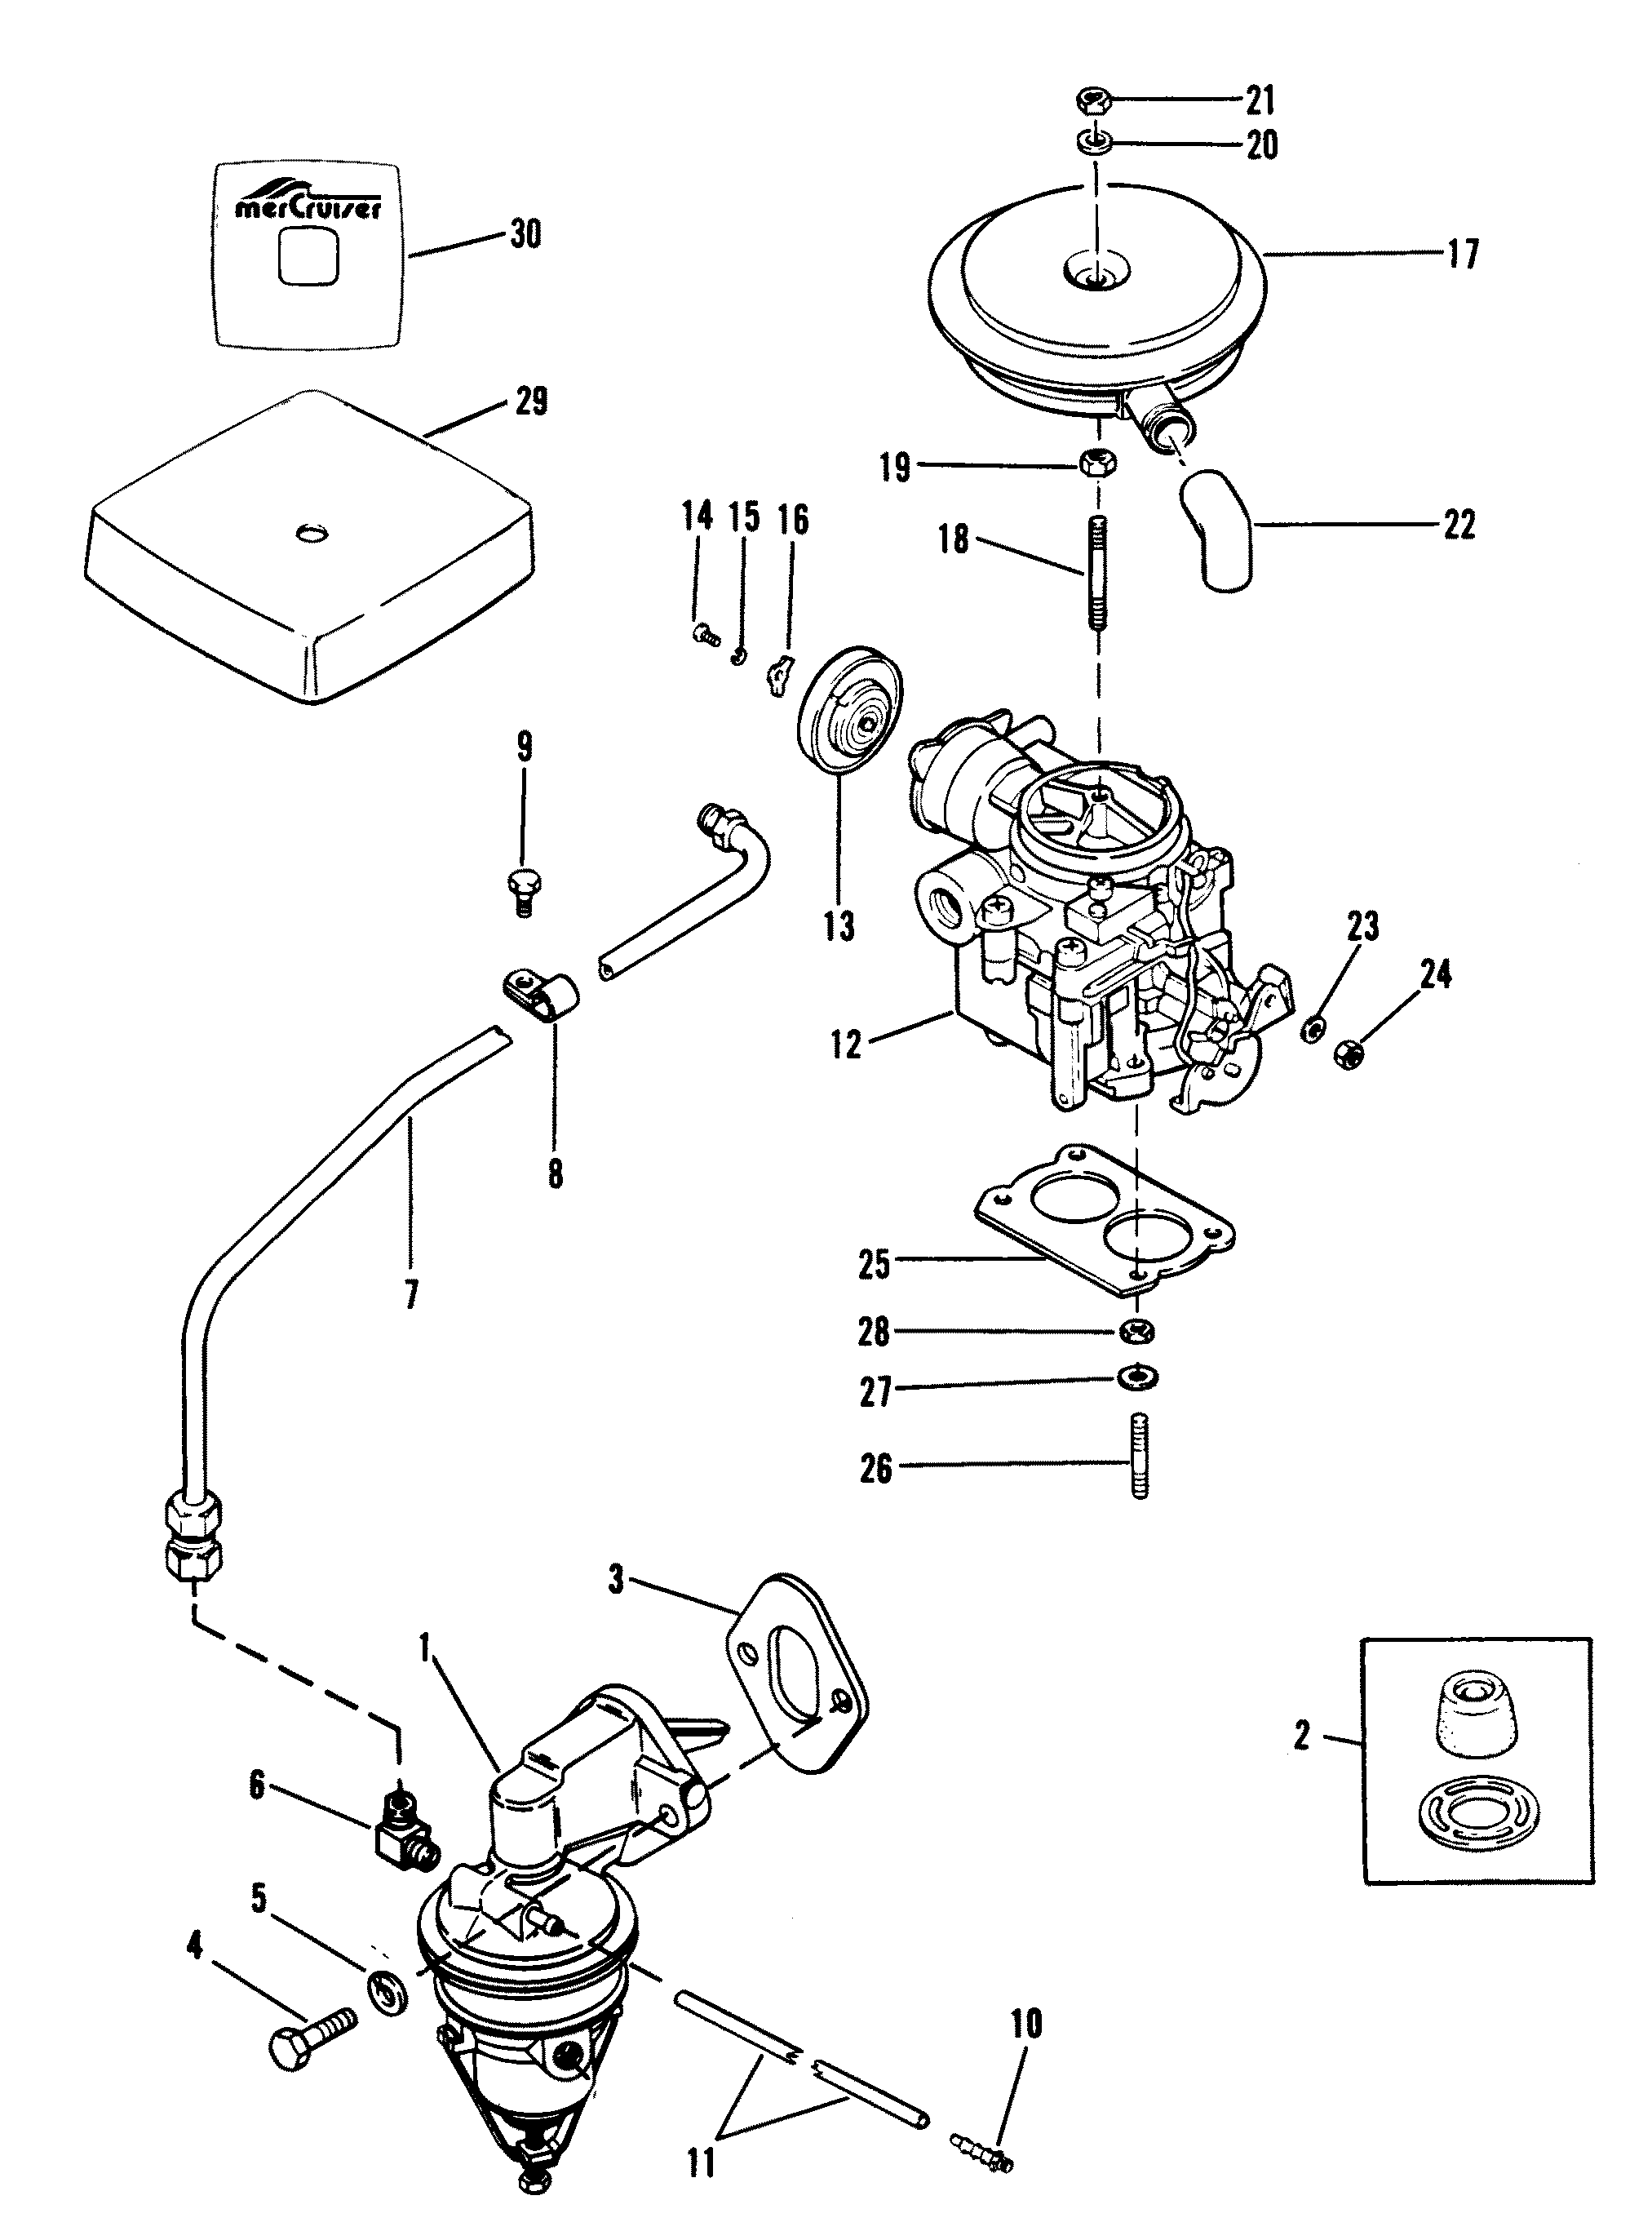 Fuel Pump And Carburetor New Design For Mercruiser 120 H P